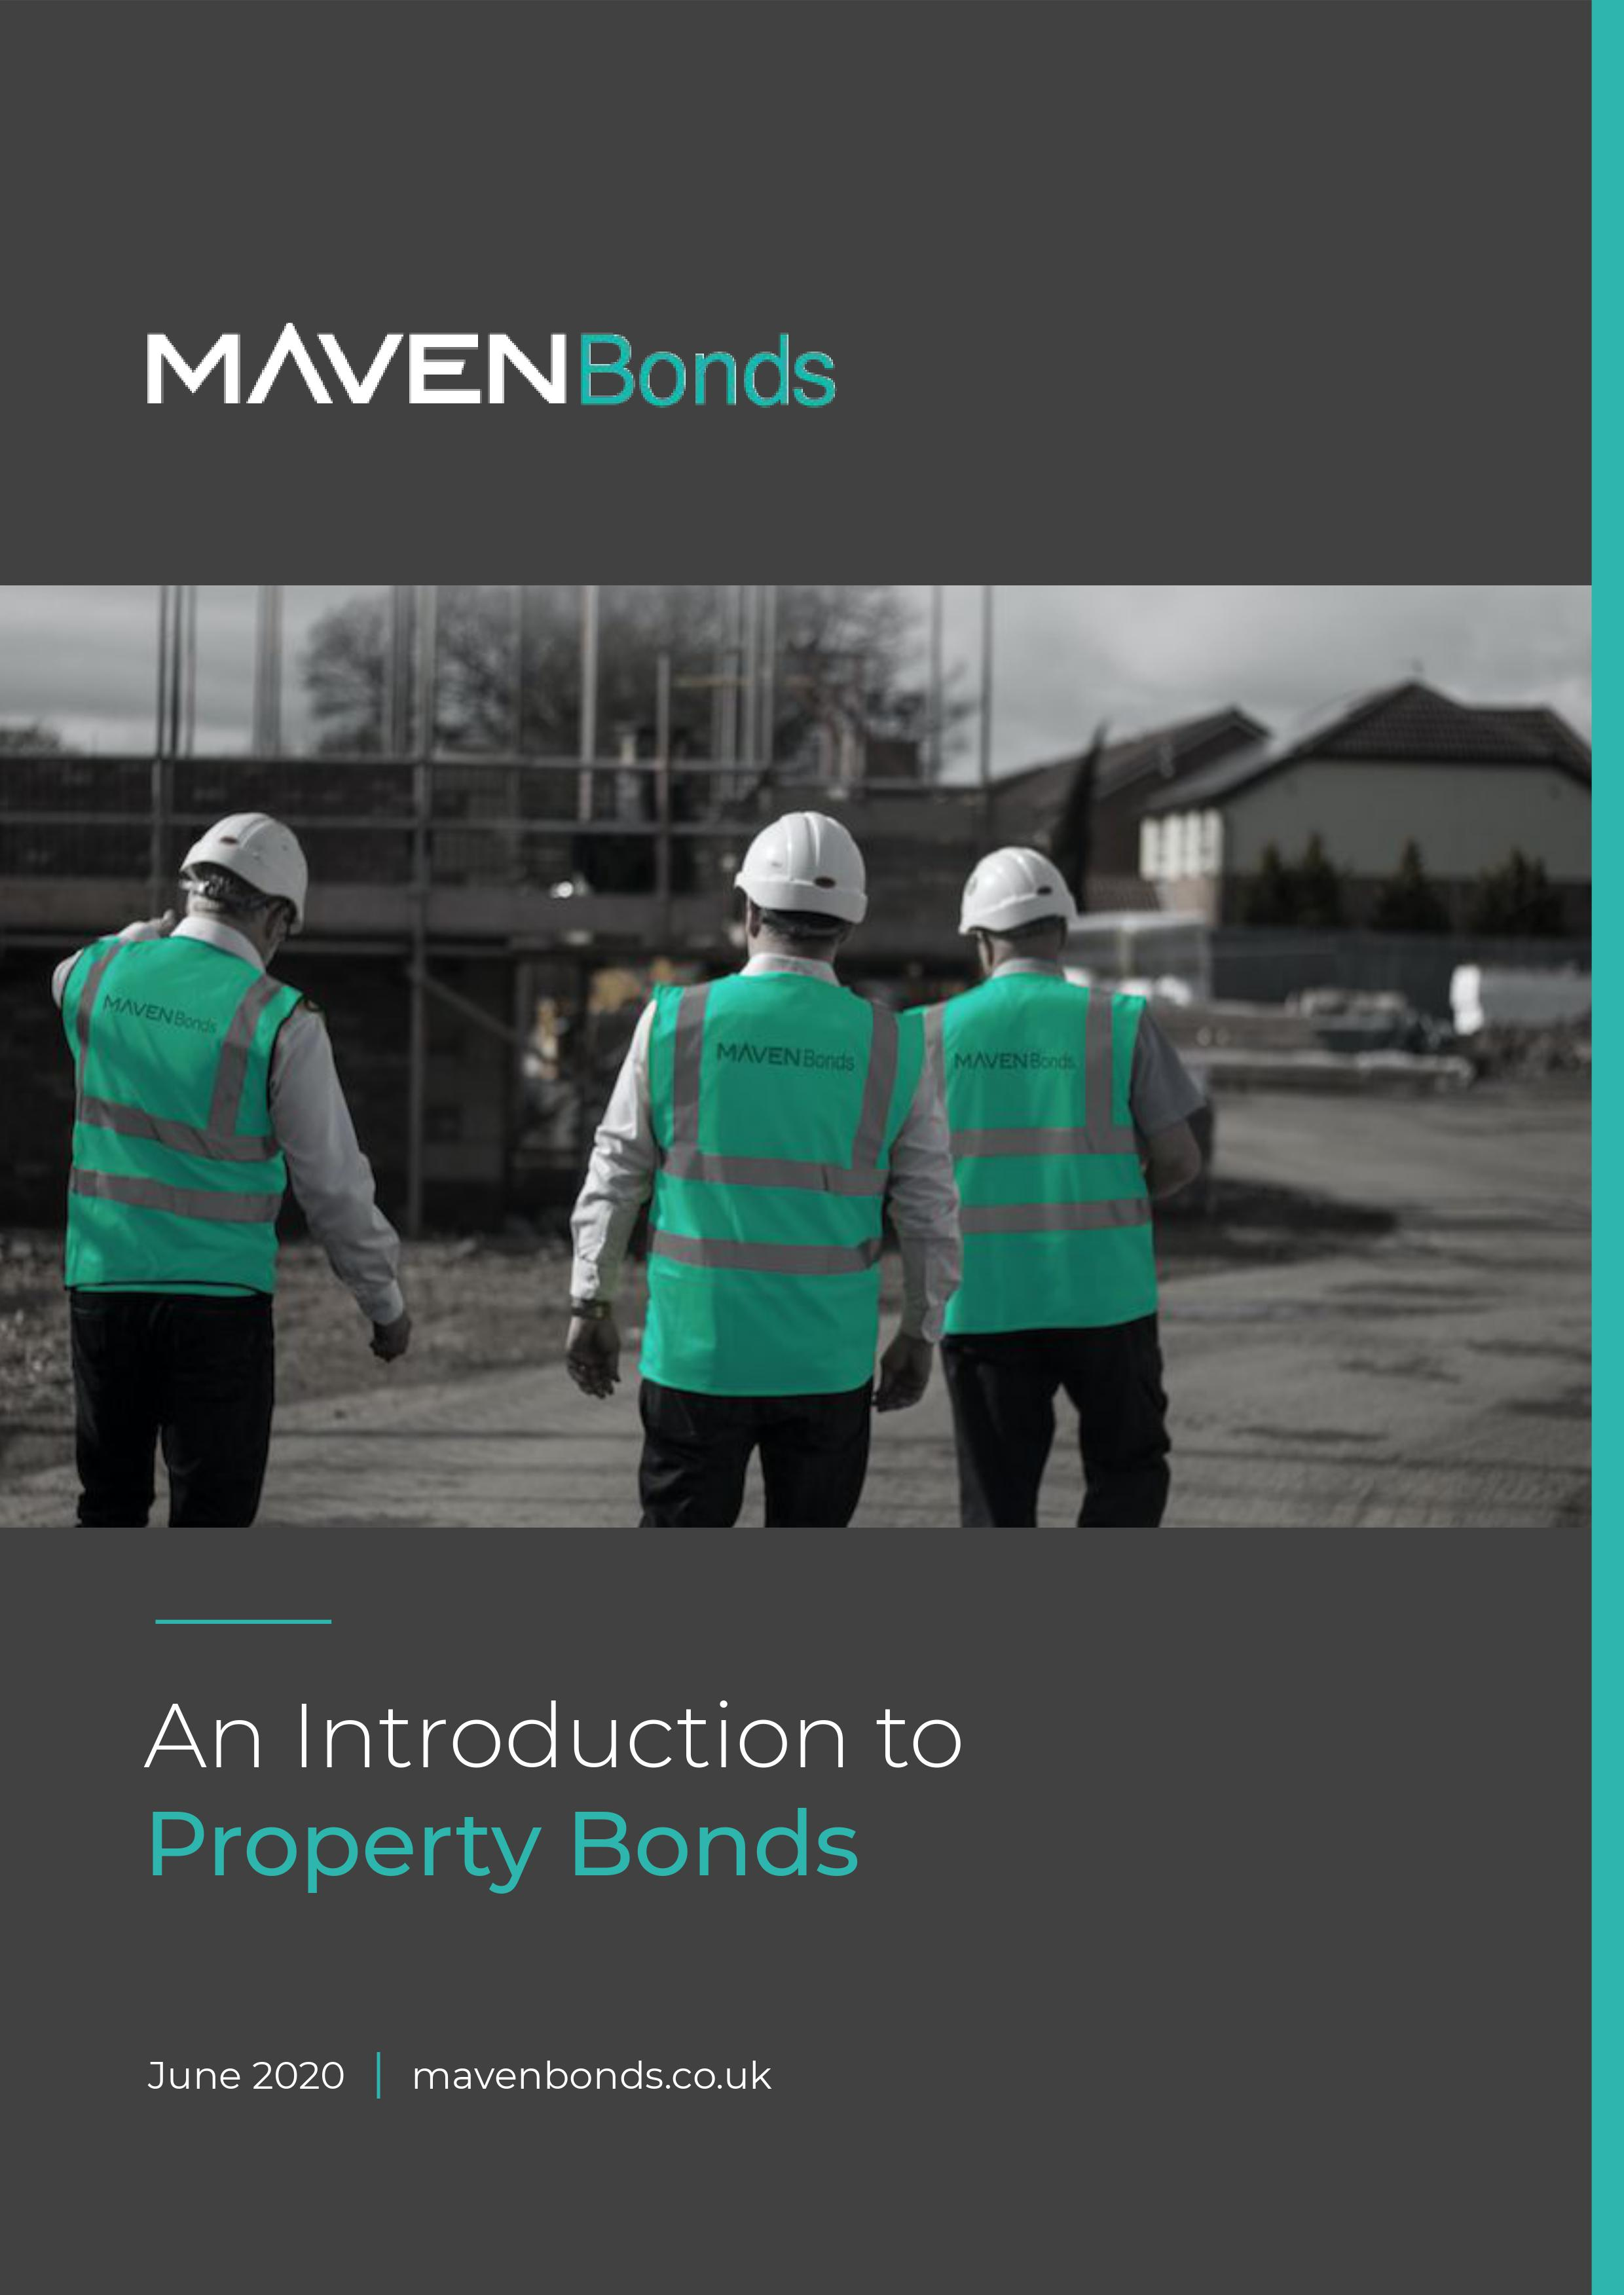 image for 'An Introduction to Property Bonds' guide